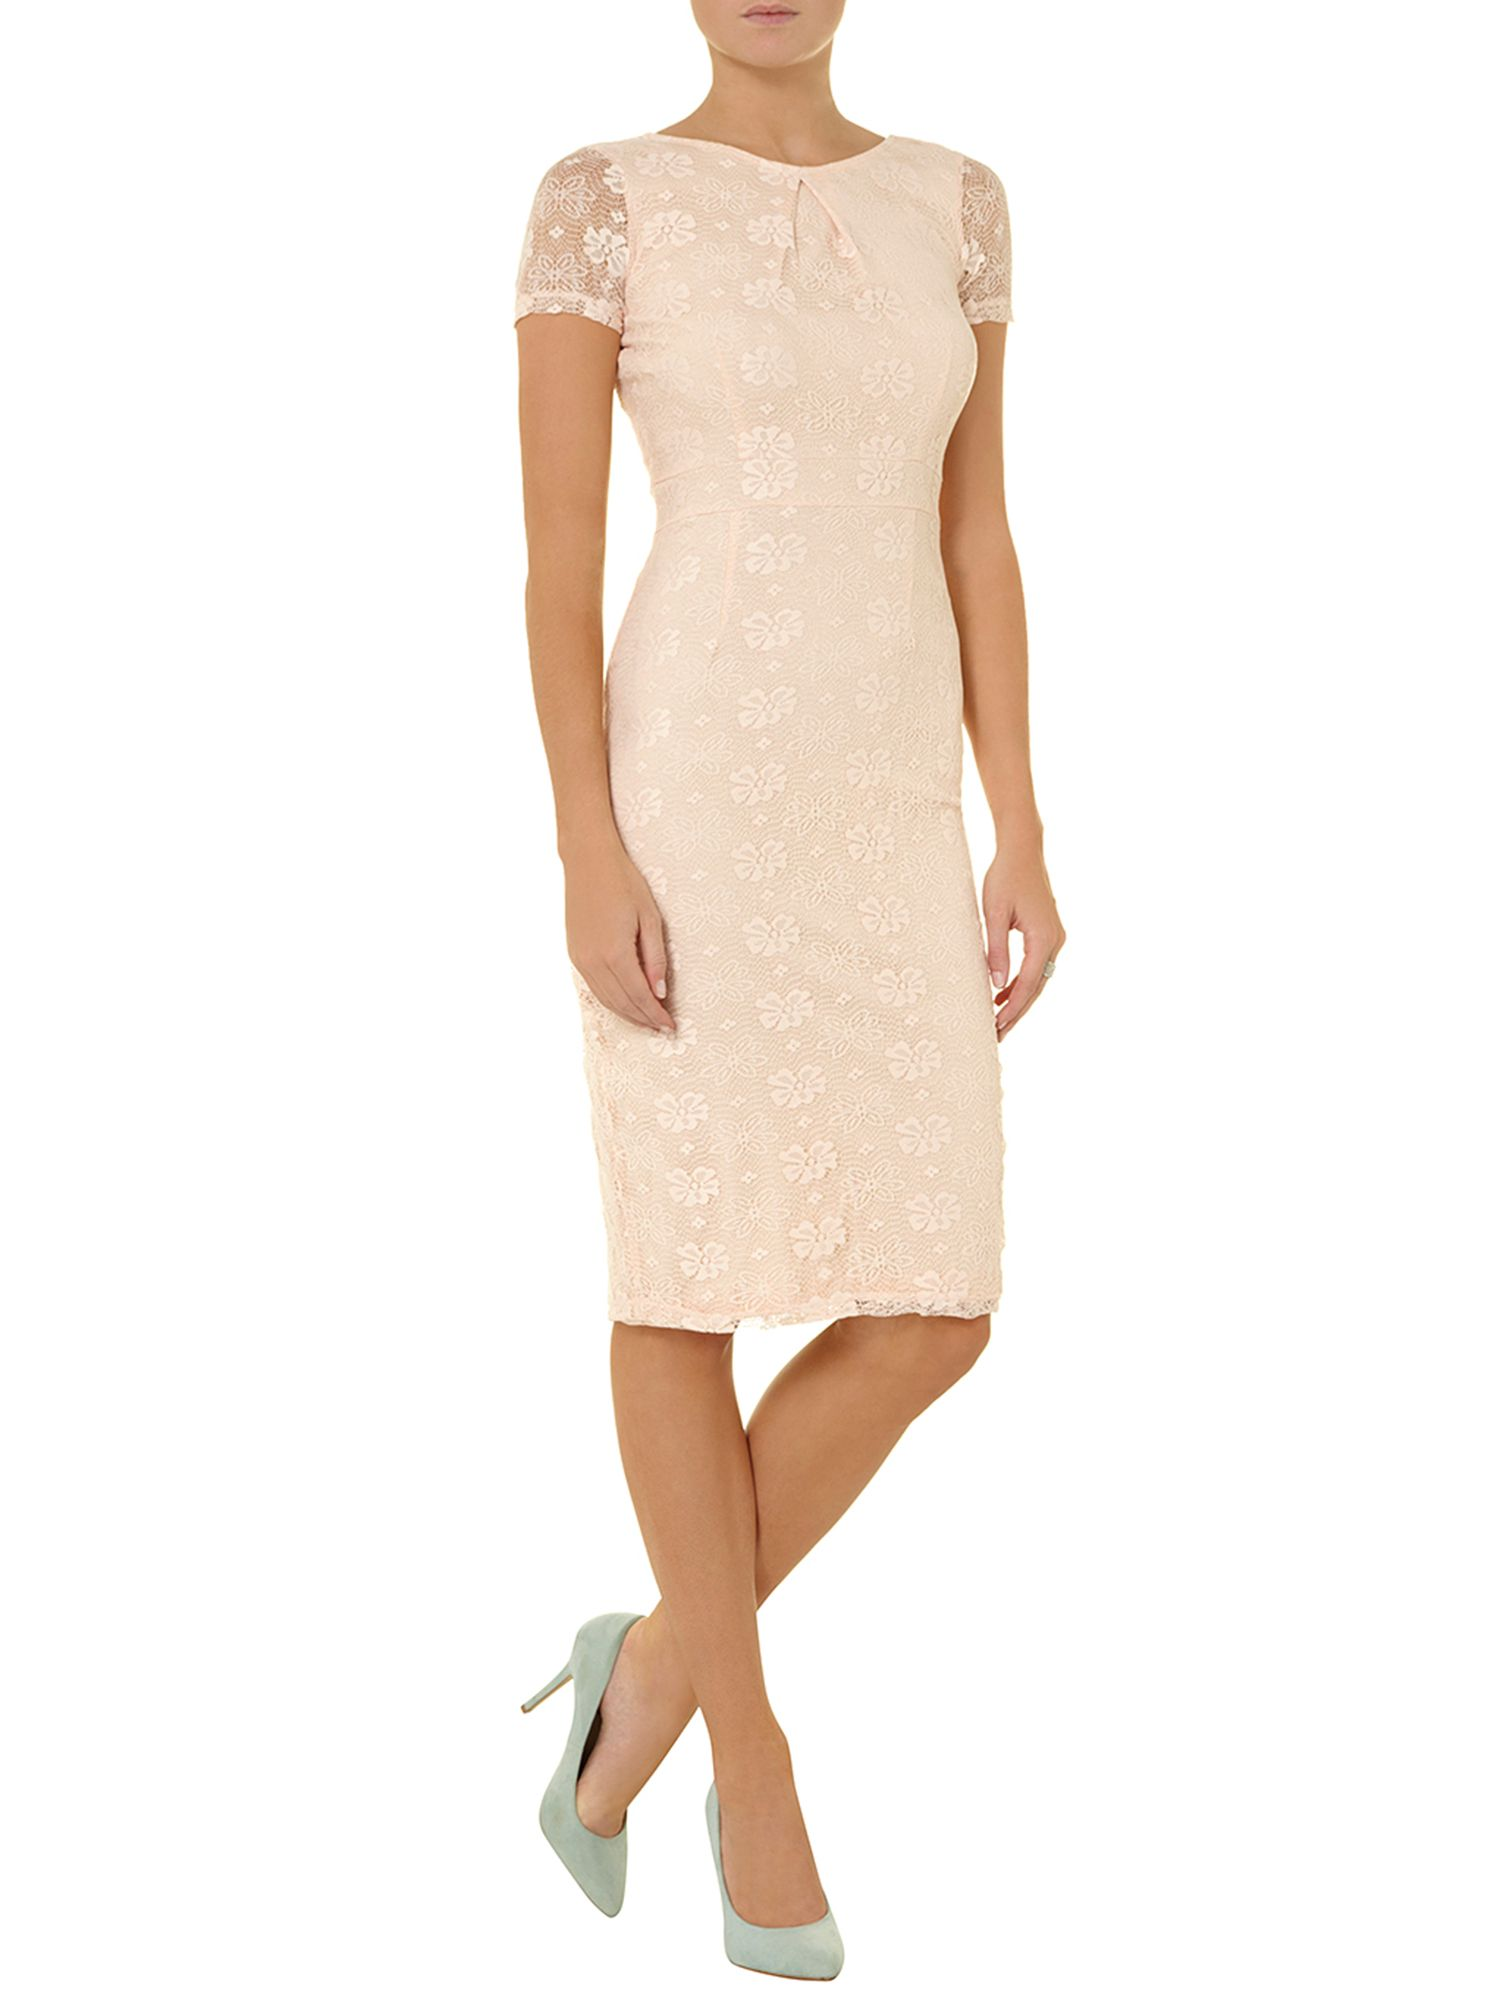 Blush lace pencil dress